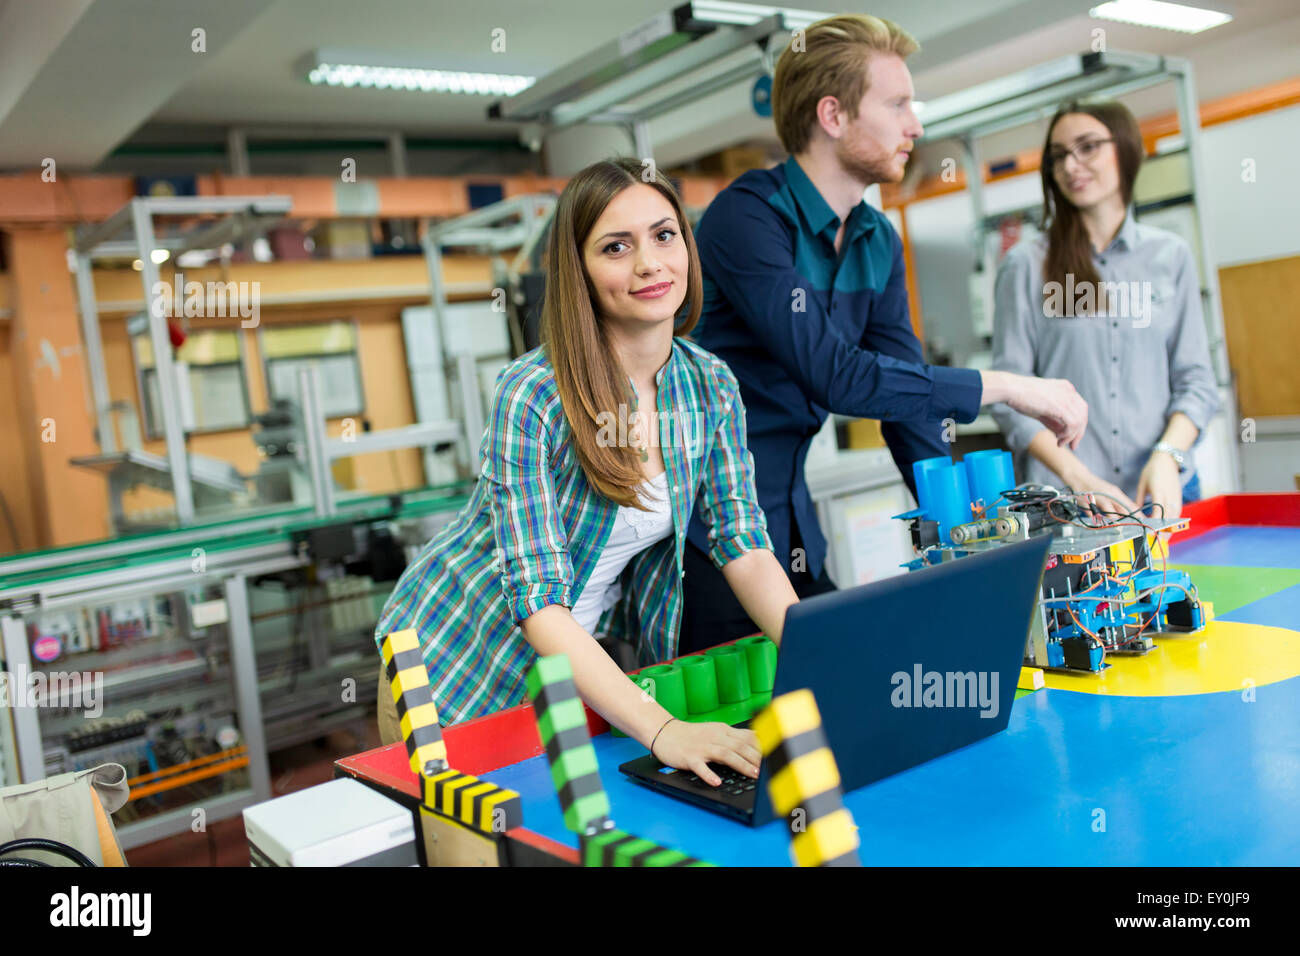 Young People In The Robotics Classroom Stock Photo 85451725 Alamy